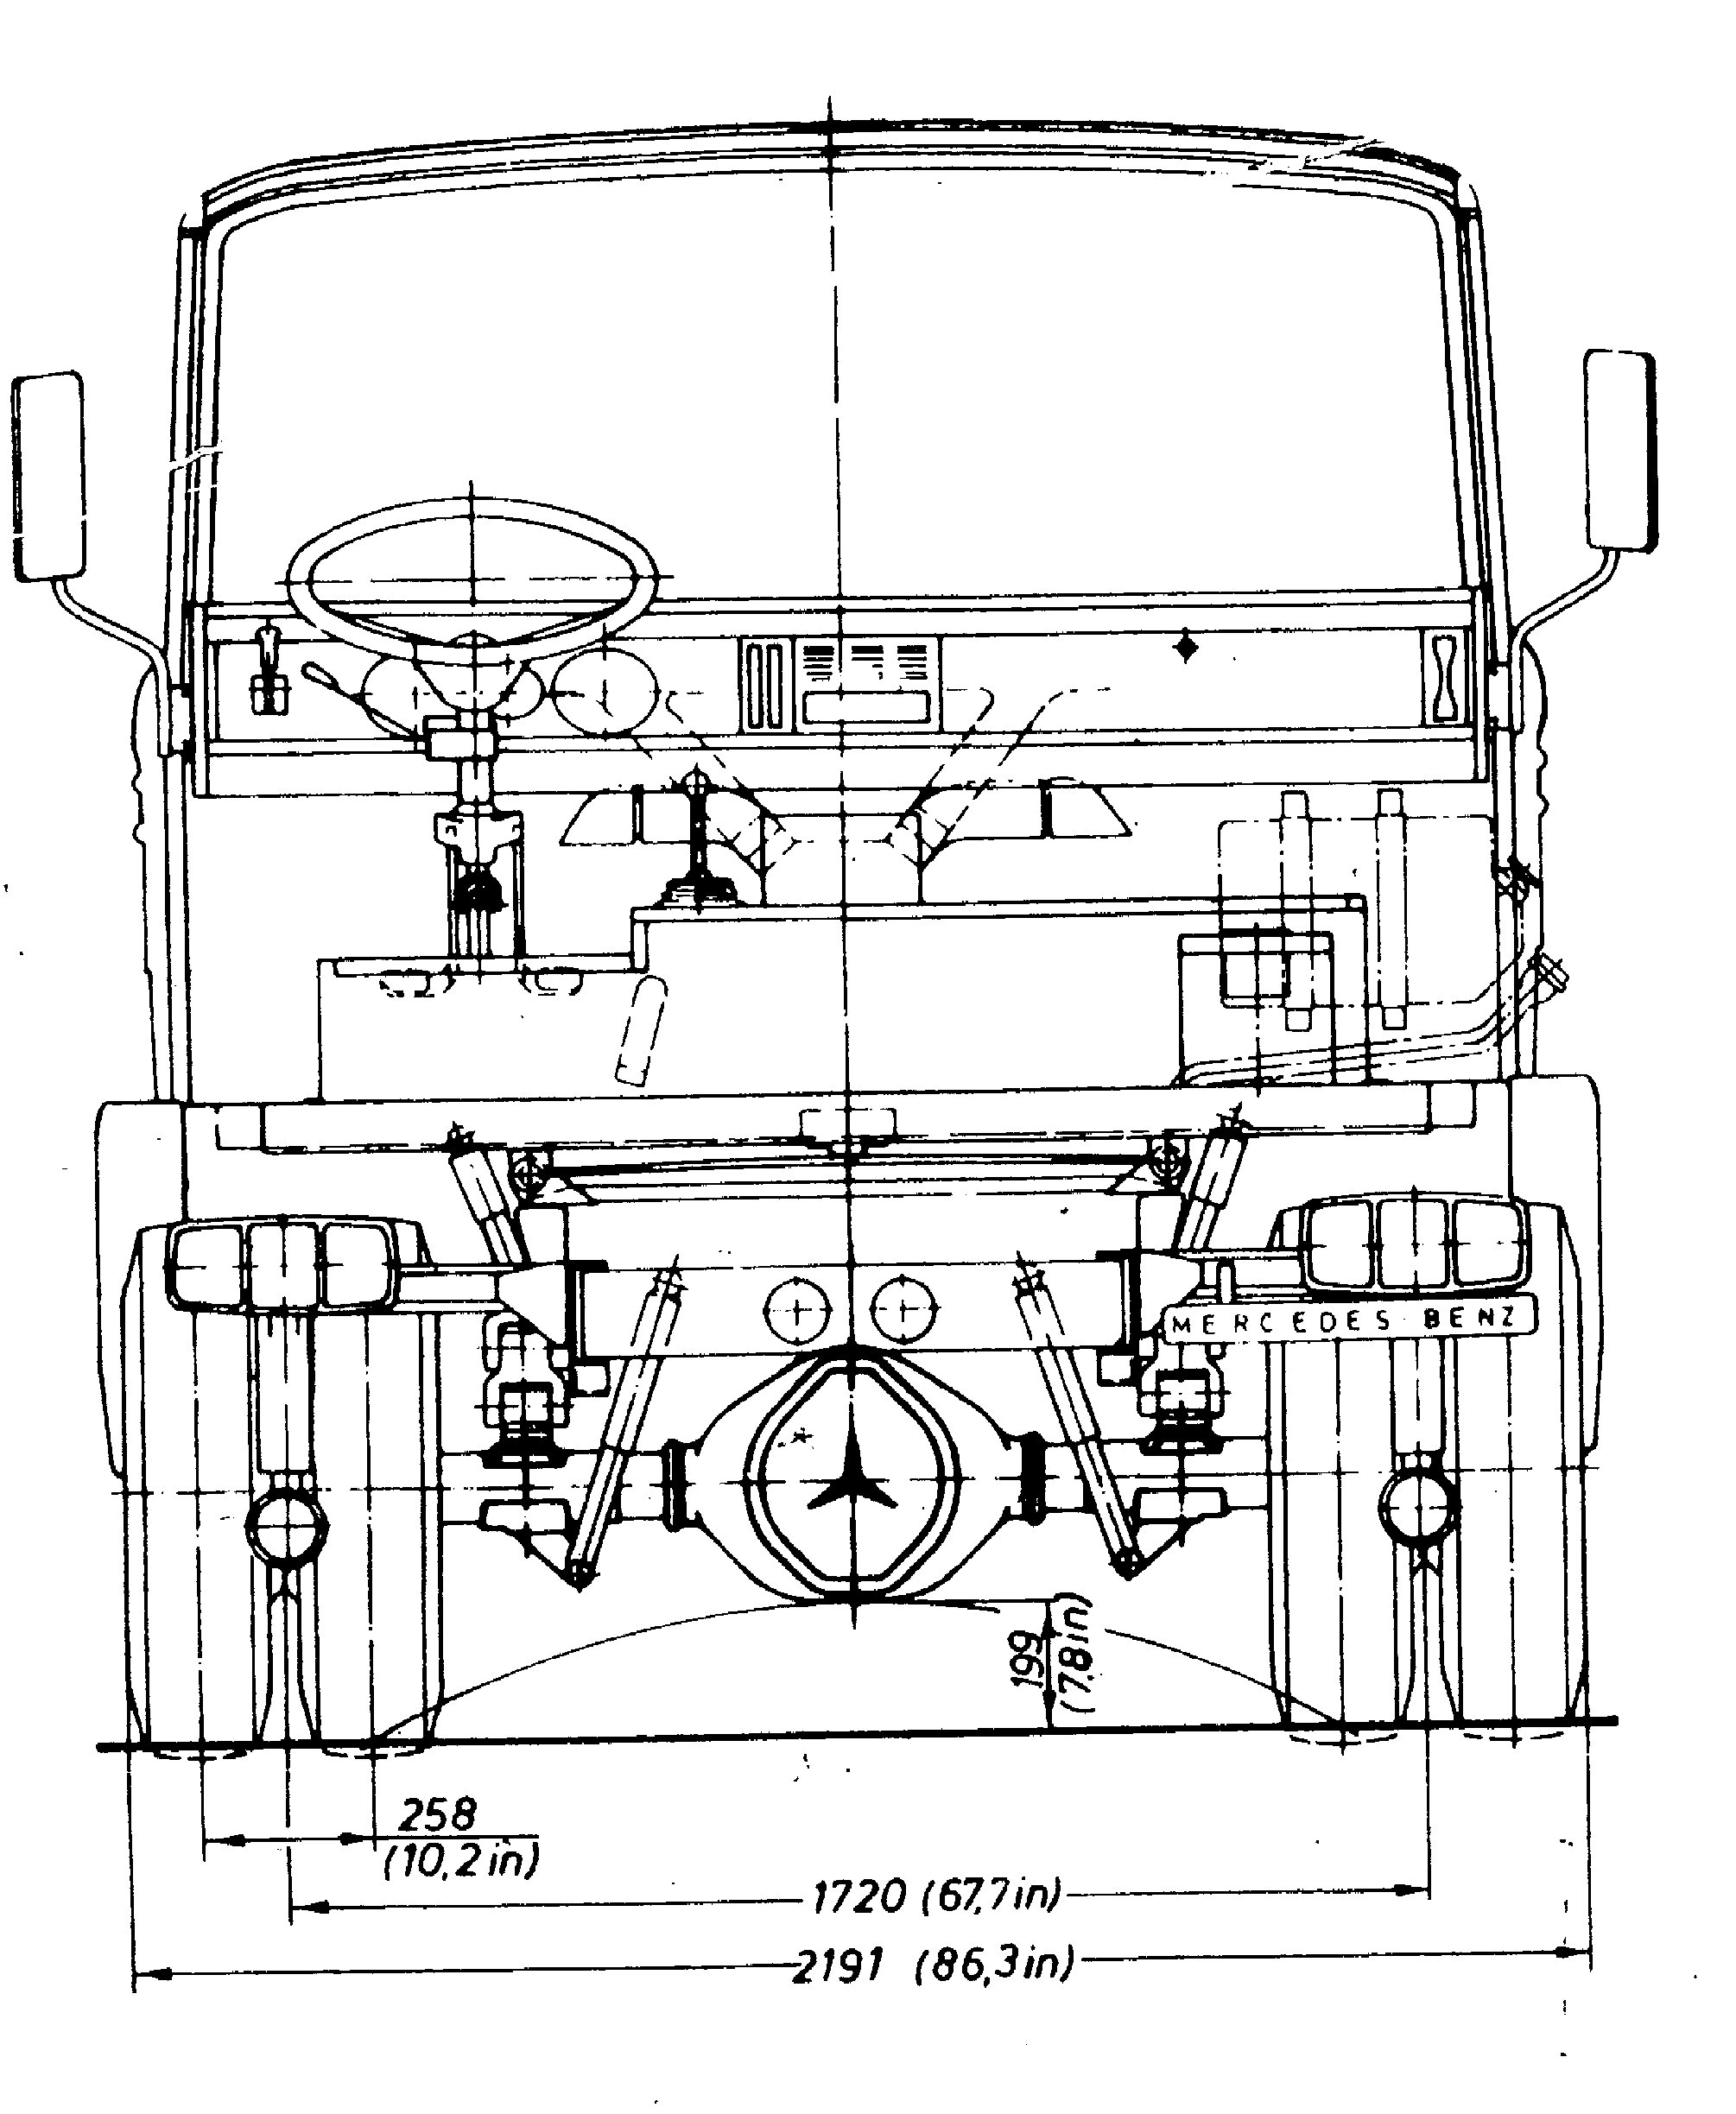 Mercedes-Benz 813 blueprint